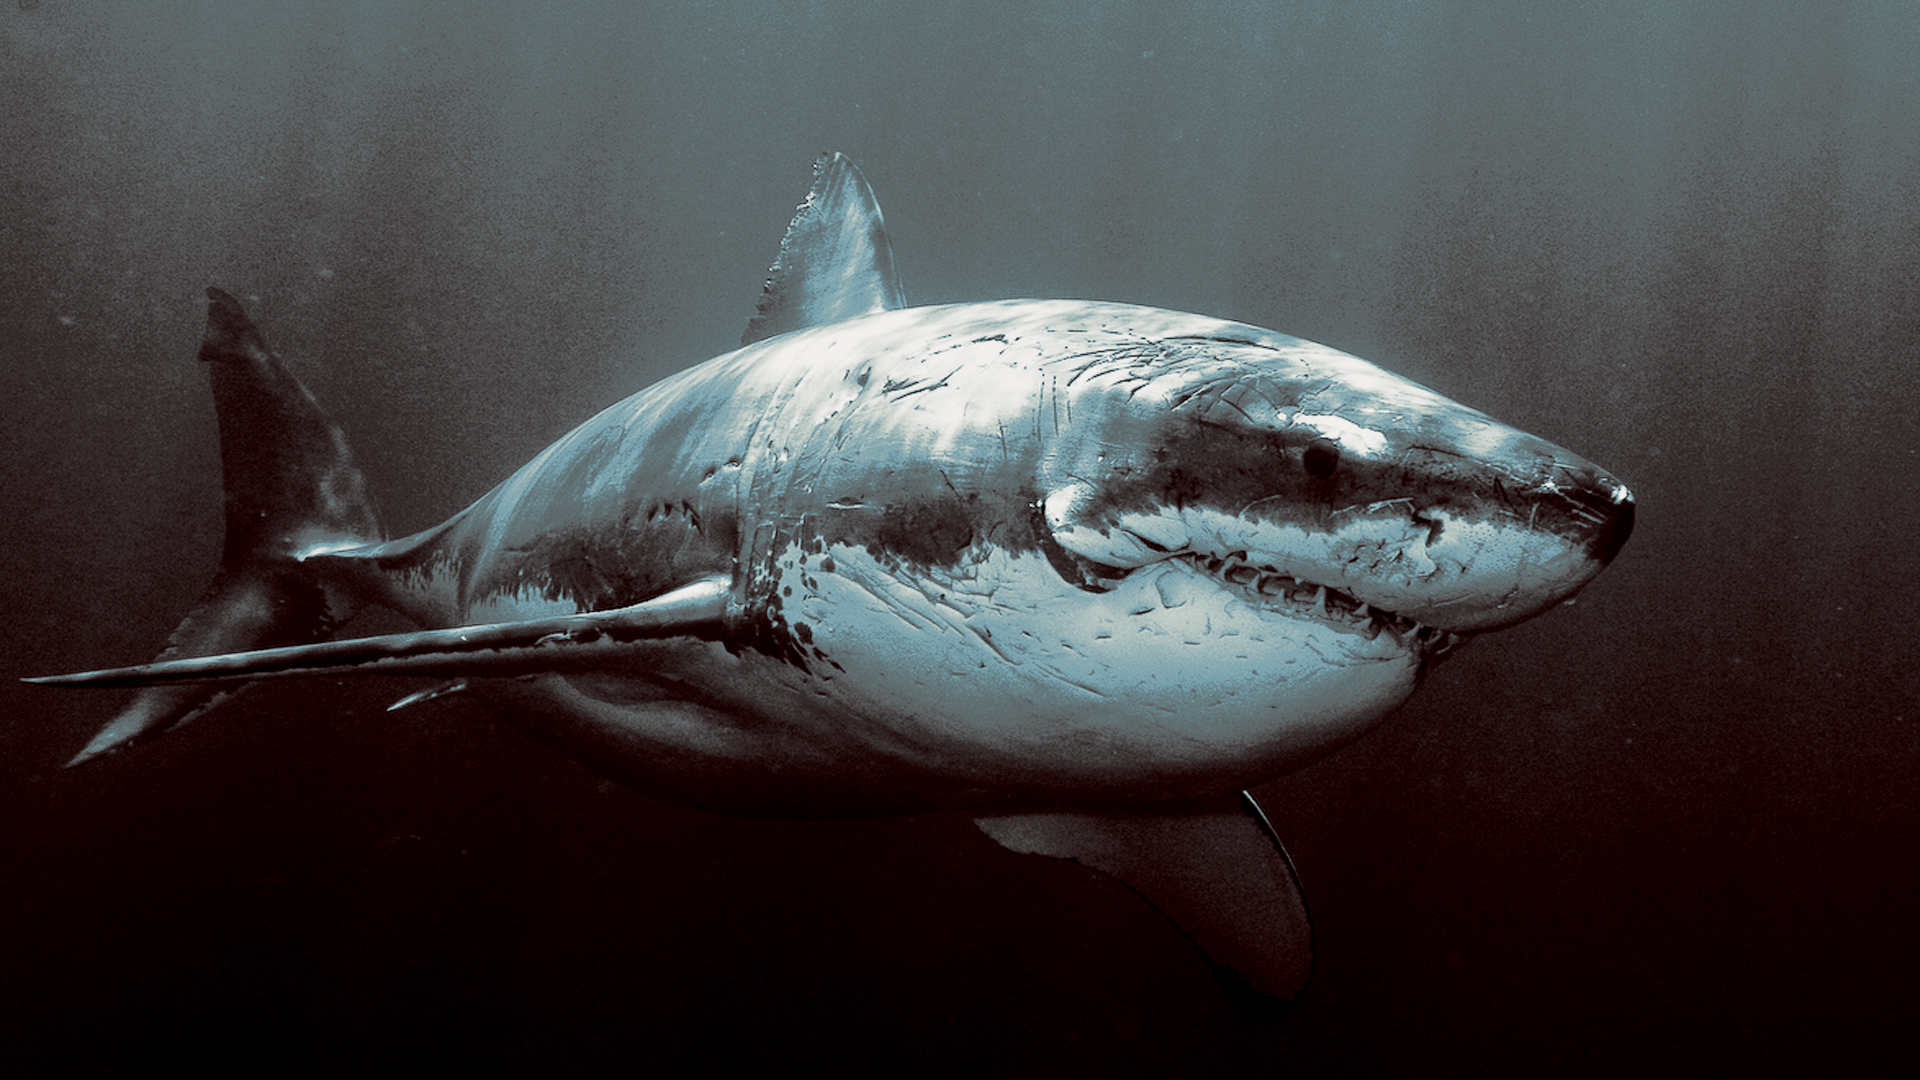 193 shark hd wallpapers background images wallpaper abyss page 4 voltagebd Images